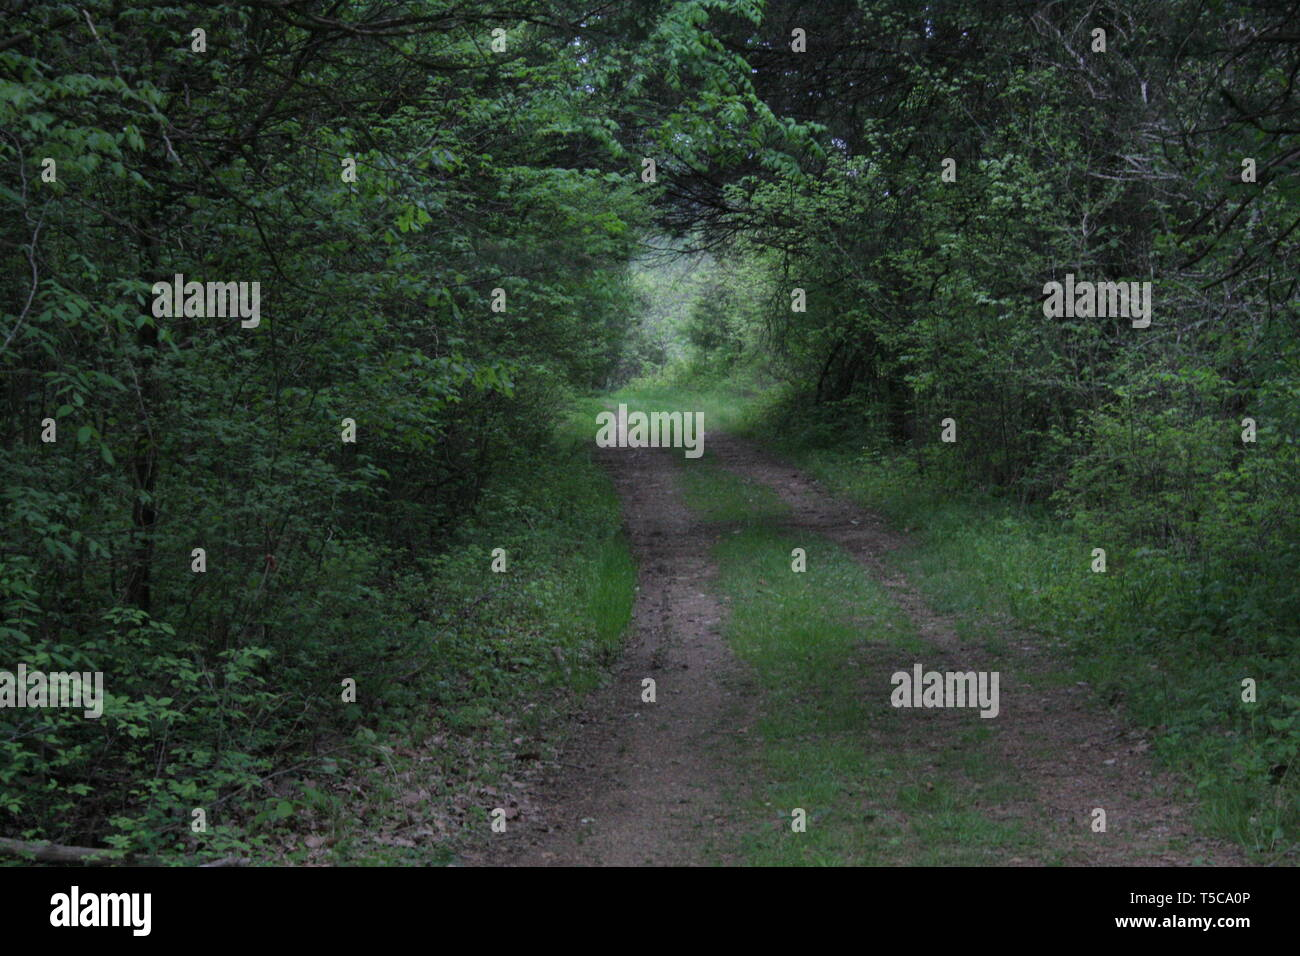 A view of the trail leading into the forest with the light leading the way - Stock Image